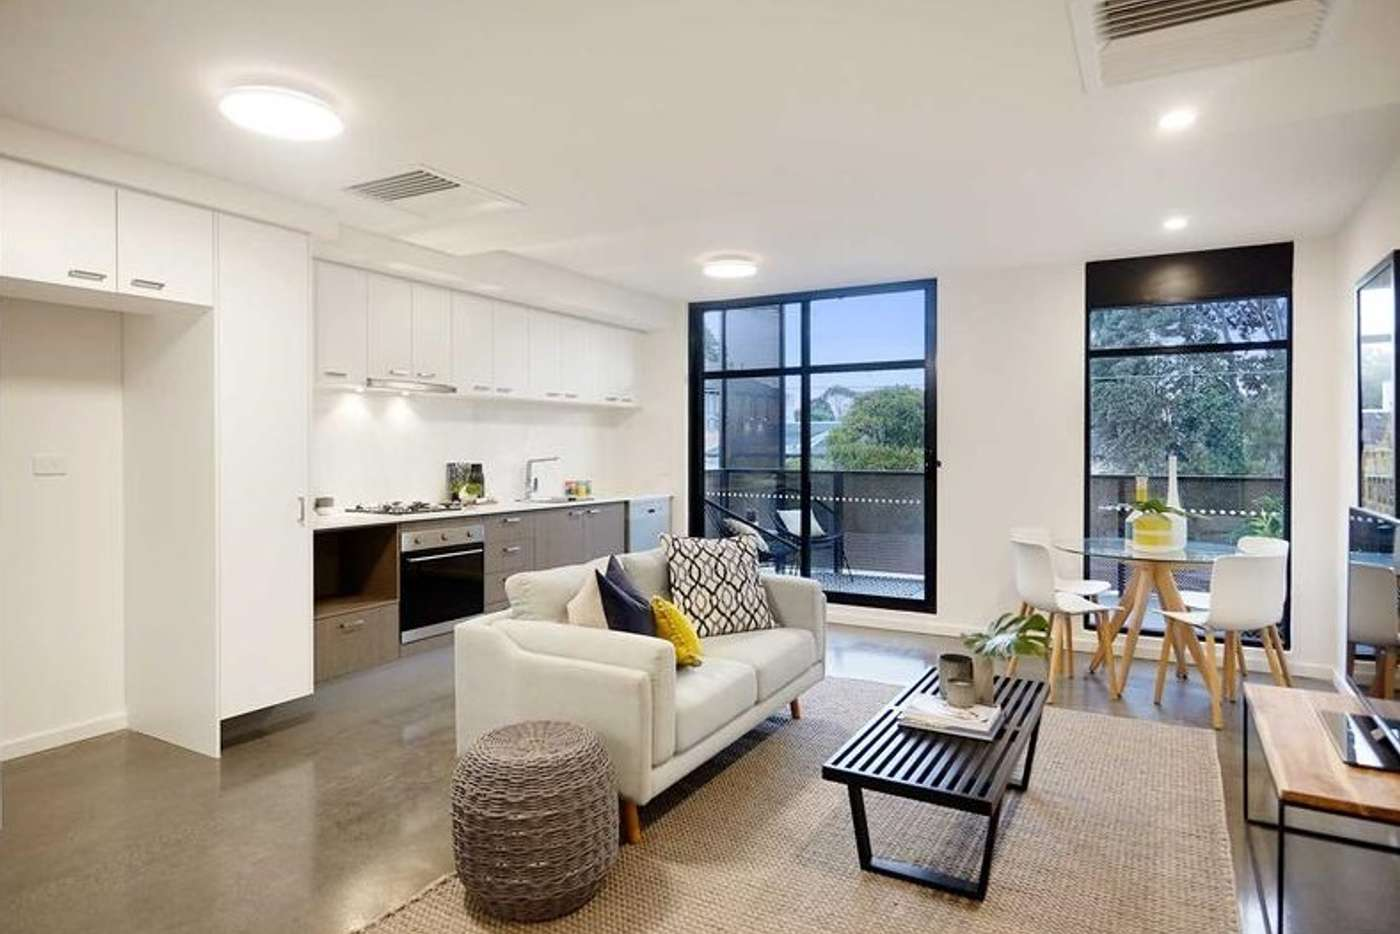 Main view of Homely unit listing, 10/95 Wellington Street, St Kilda VIC 3182